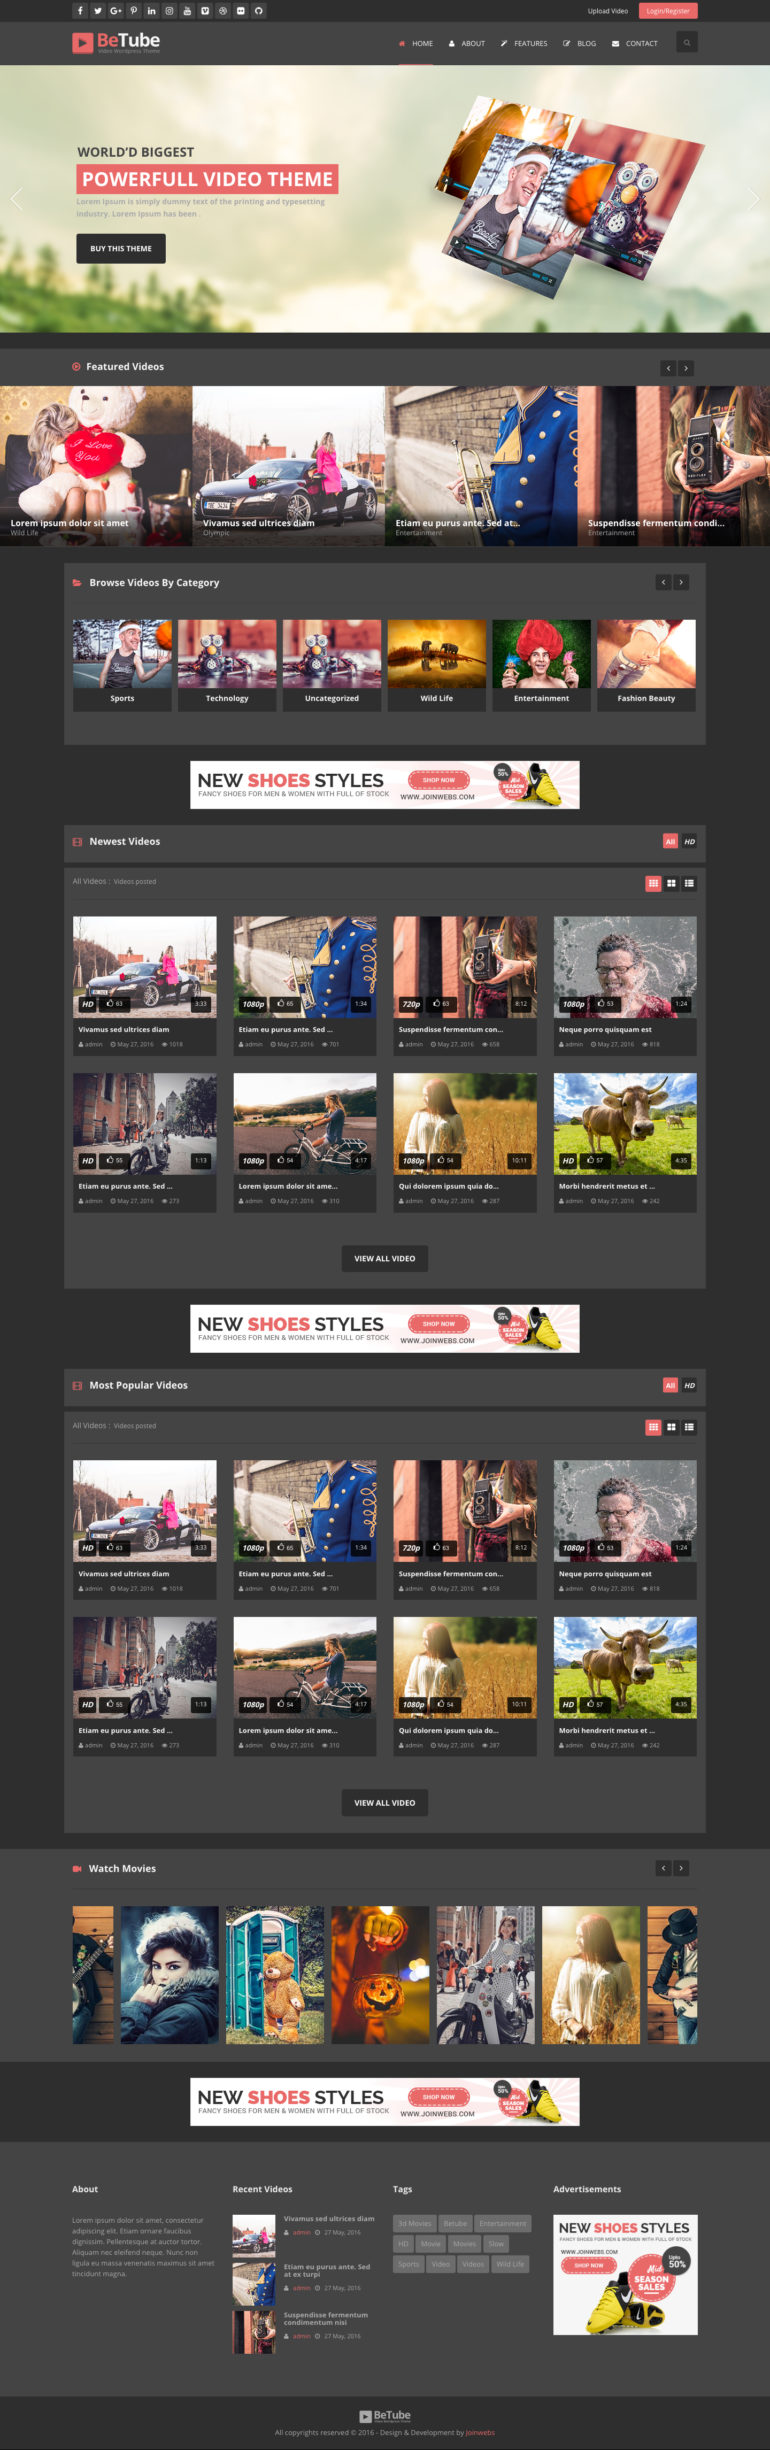 BeTube-Video WP-Theme-DARK-Colored-Version